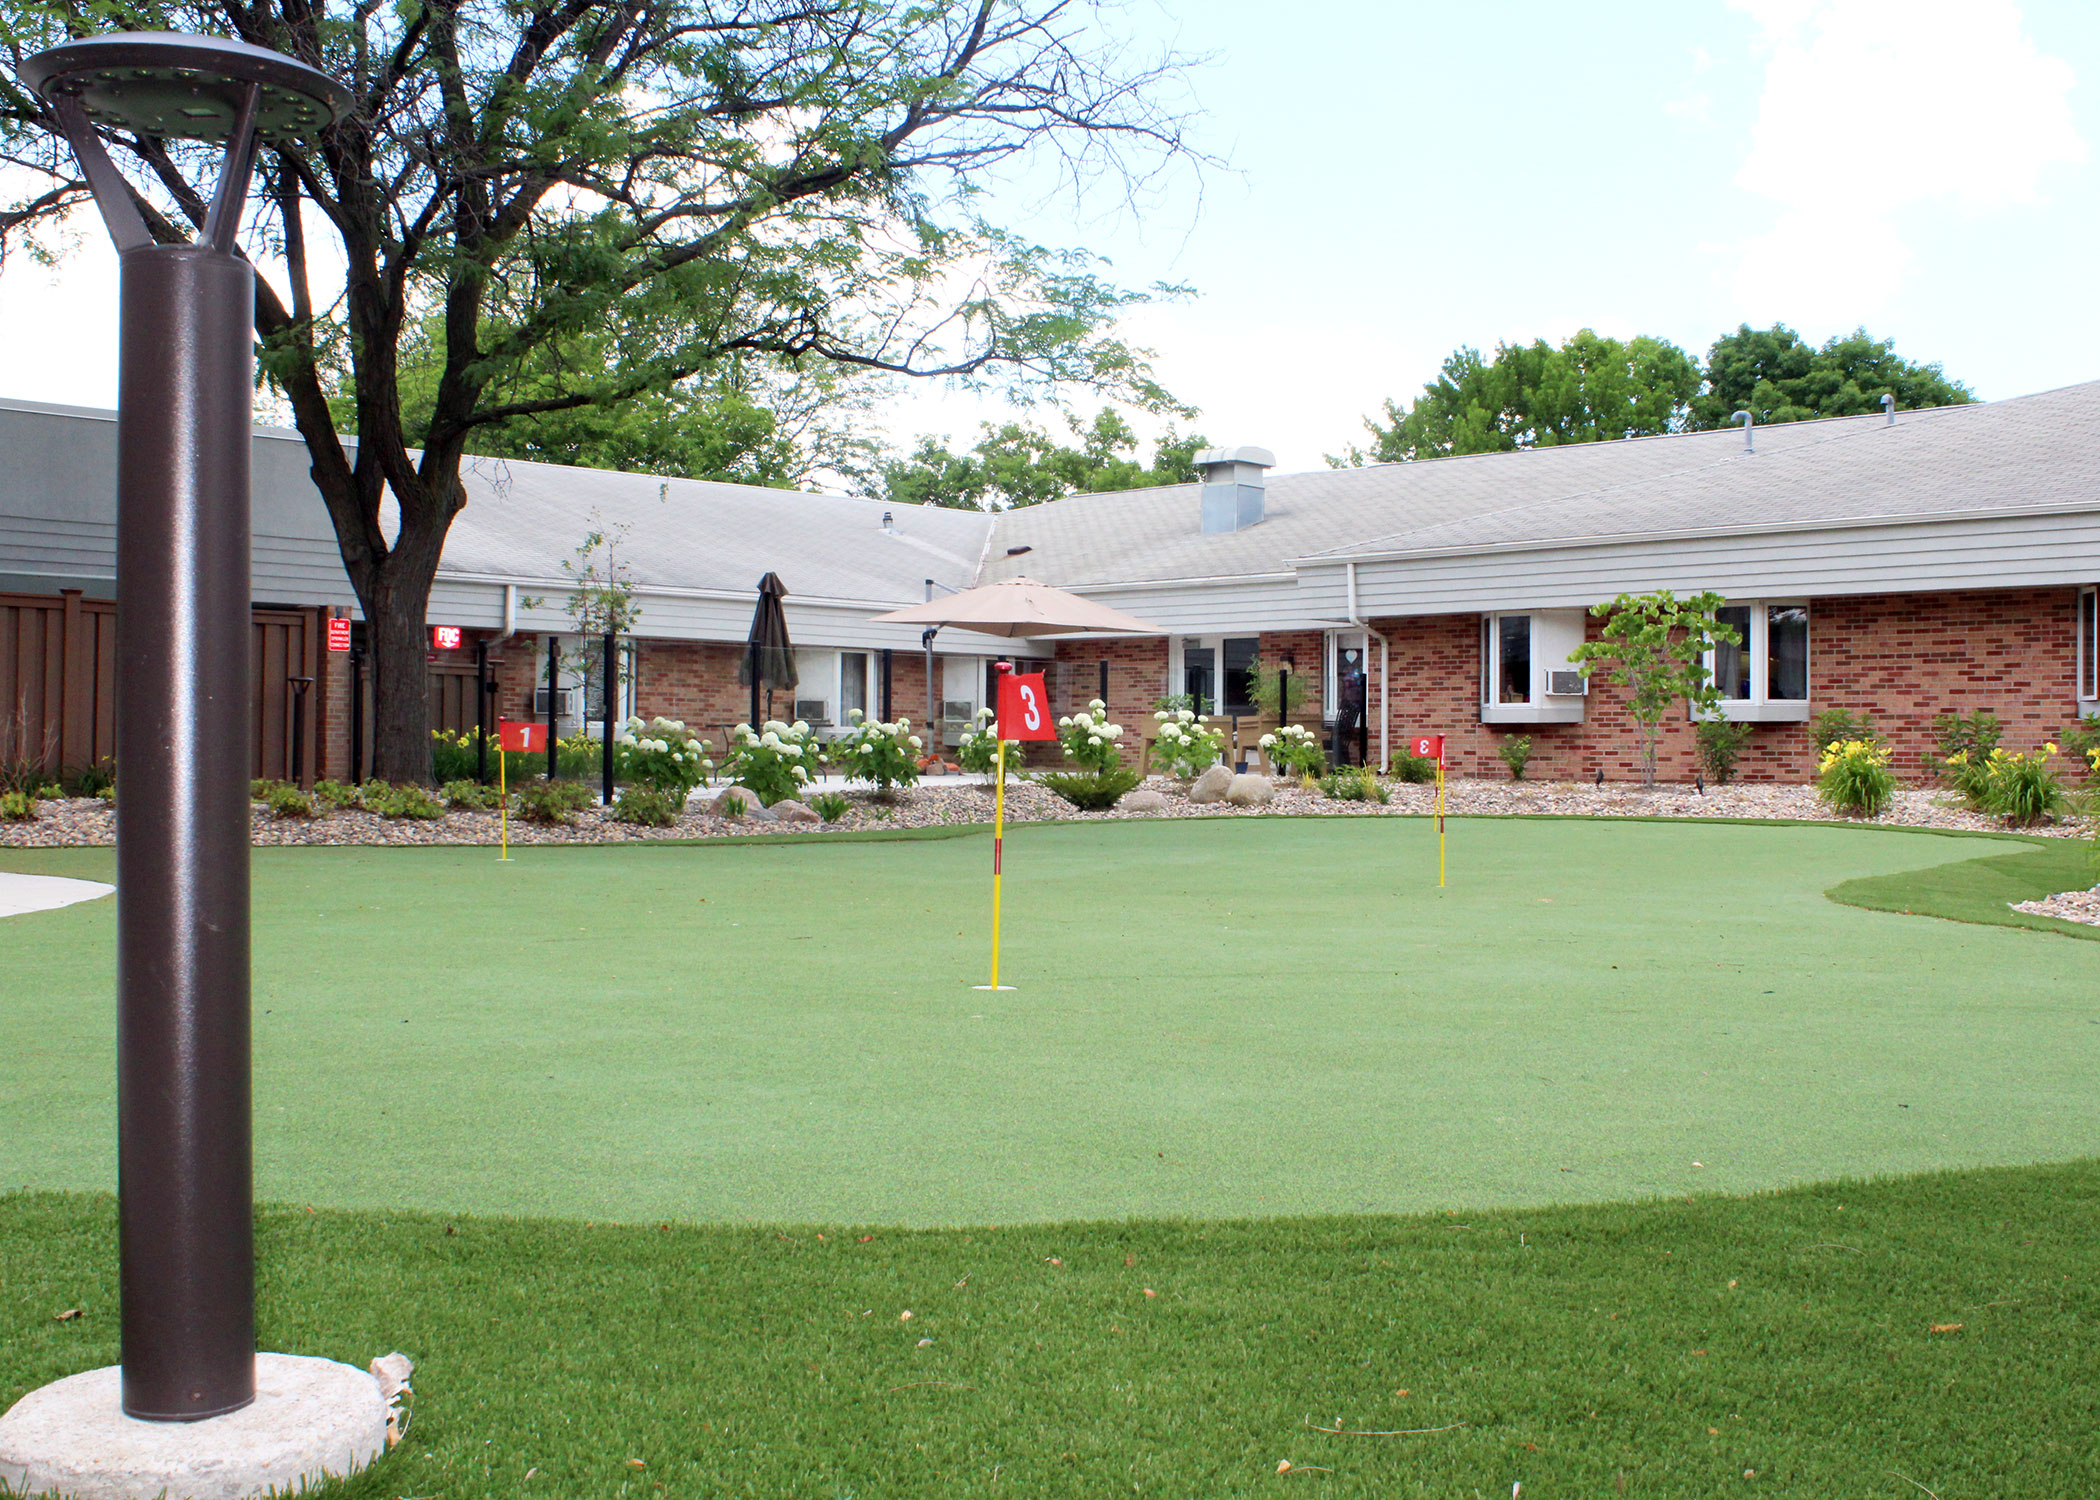 The outdoor putting green nestled in a courtyard with beautiful landscaping